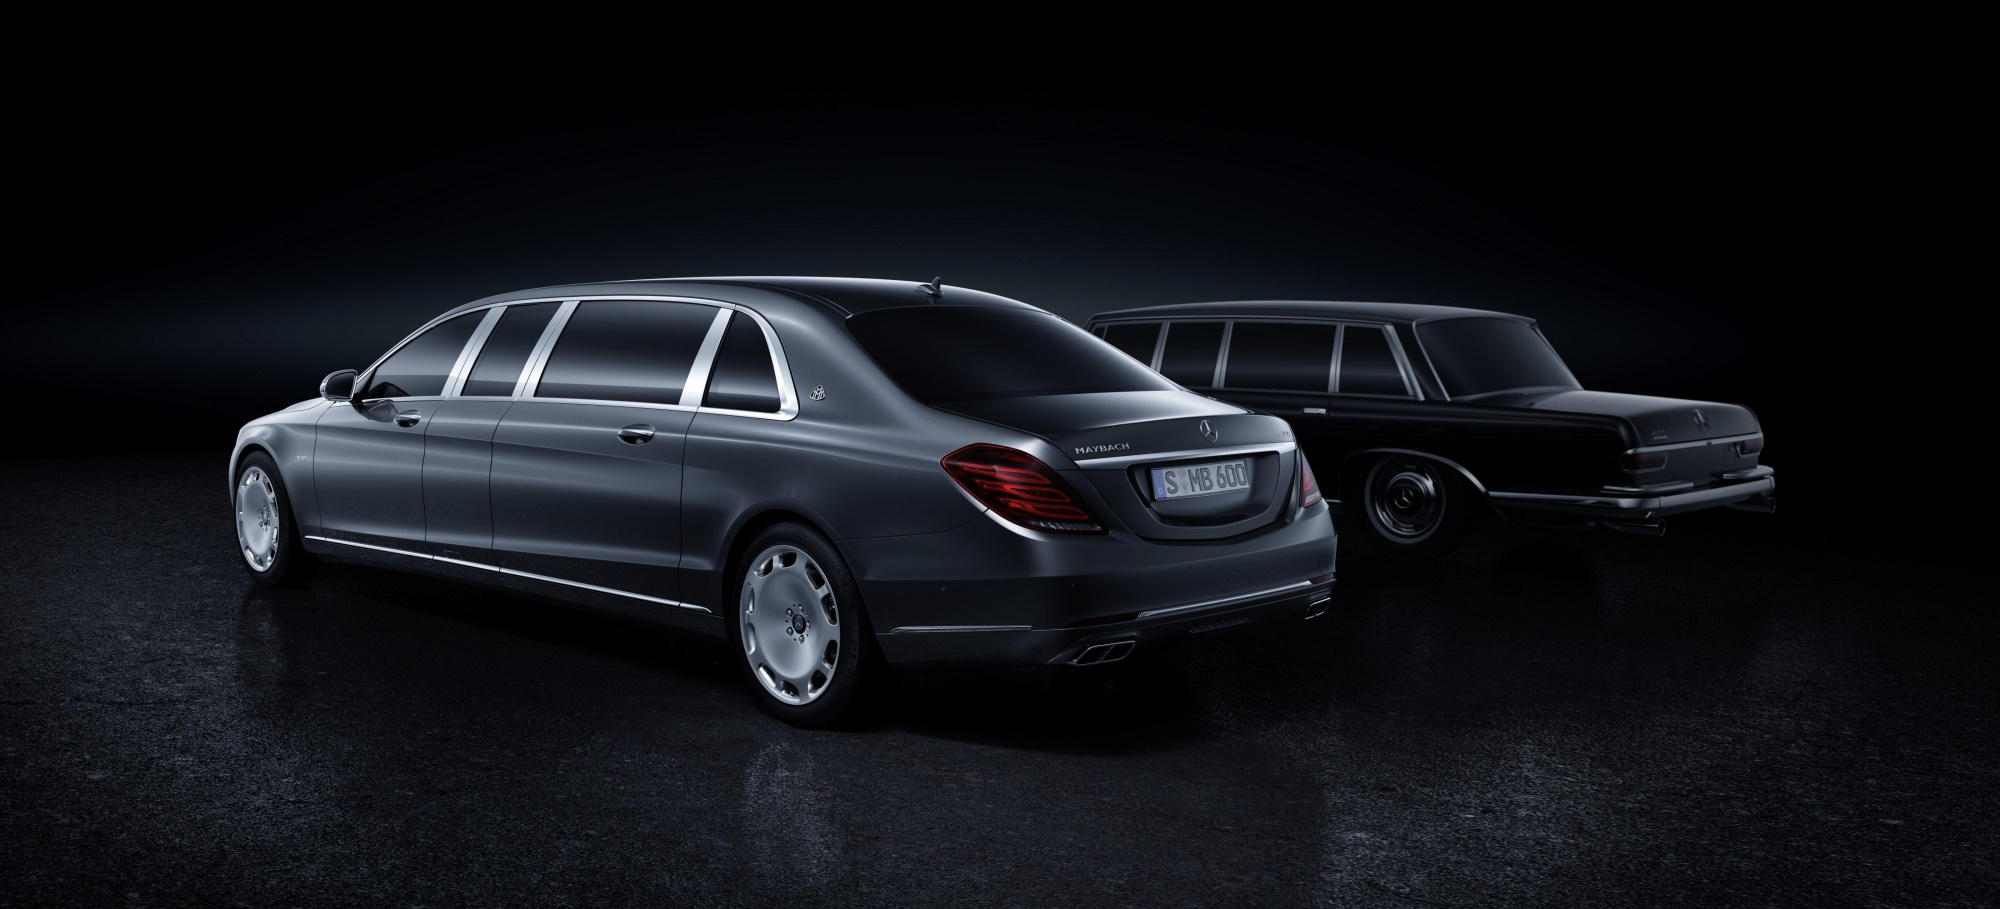 Mercedes-Maybach Pullman S600 2